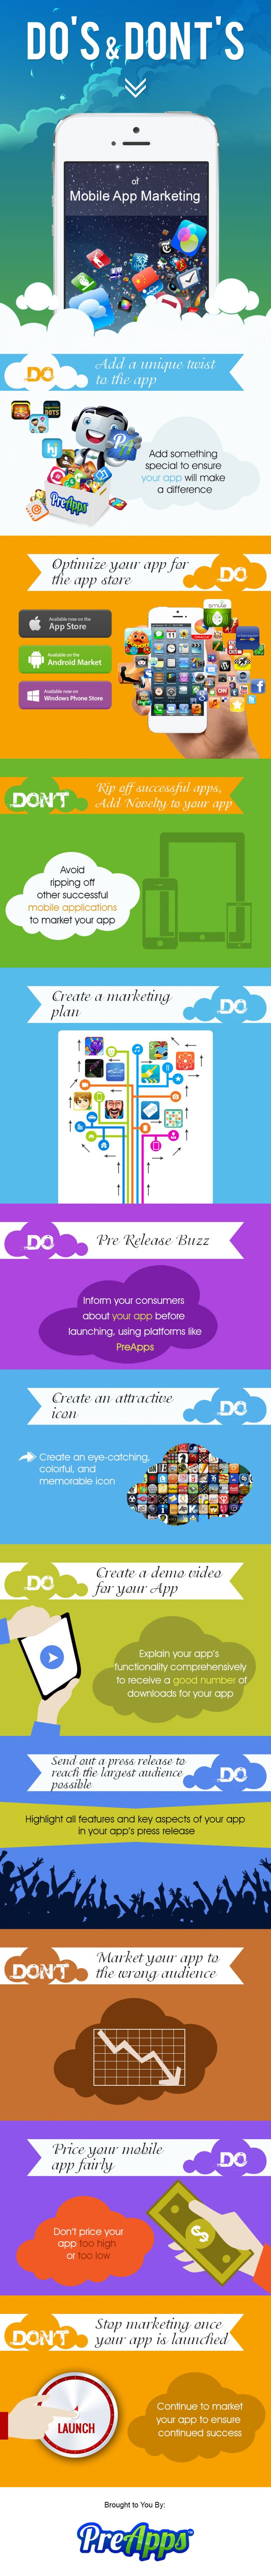 Do's & Dont's of Mobile App Marketing